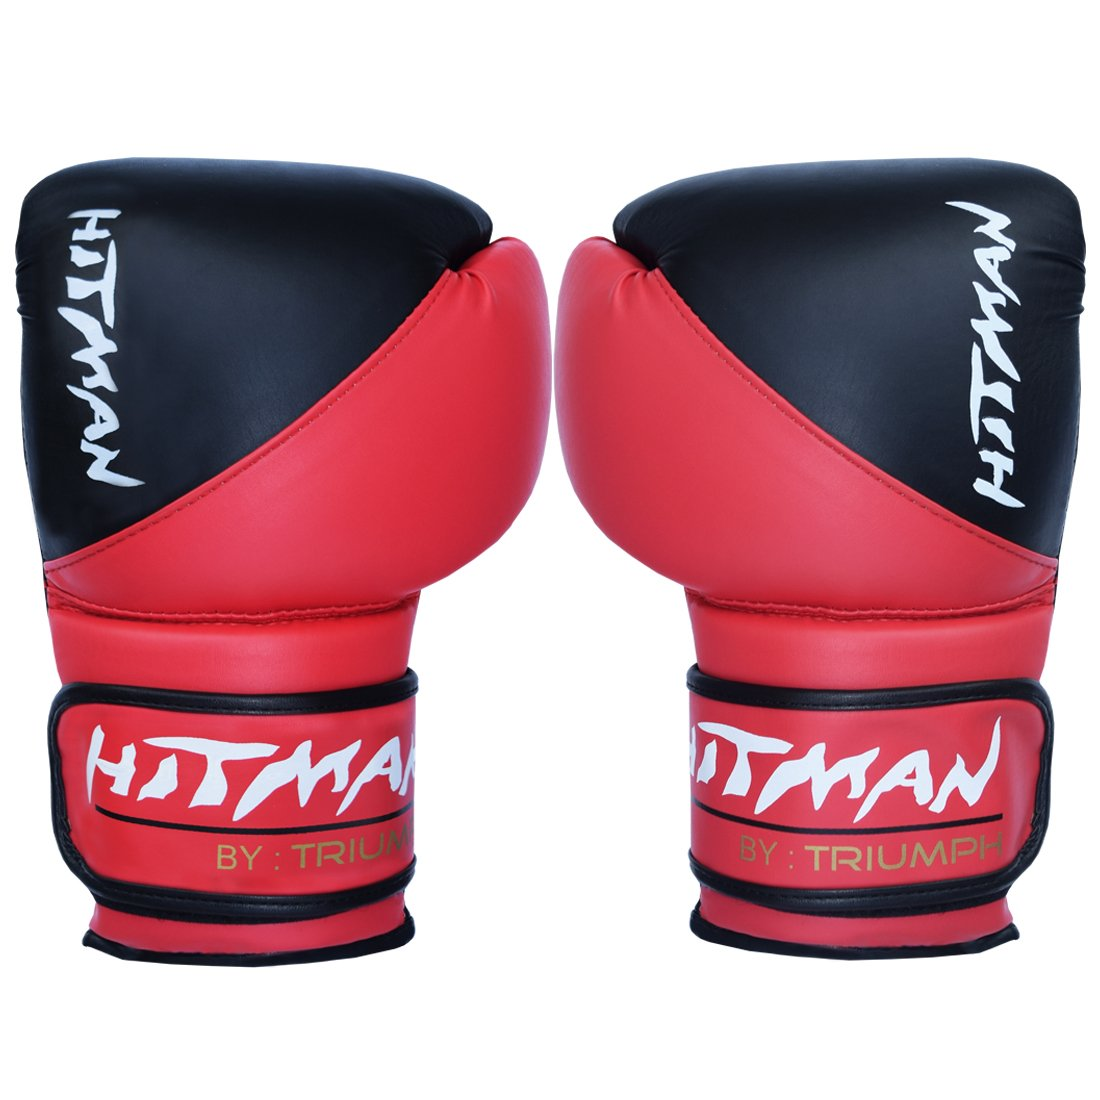 Buy Hitman Gb04592 Pu Strike Boxing Gloves Black Red Online At Low Prices In India Amazon In